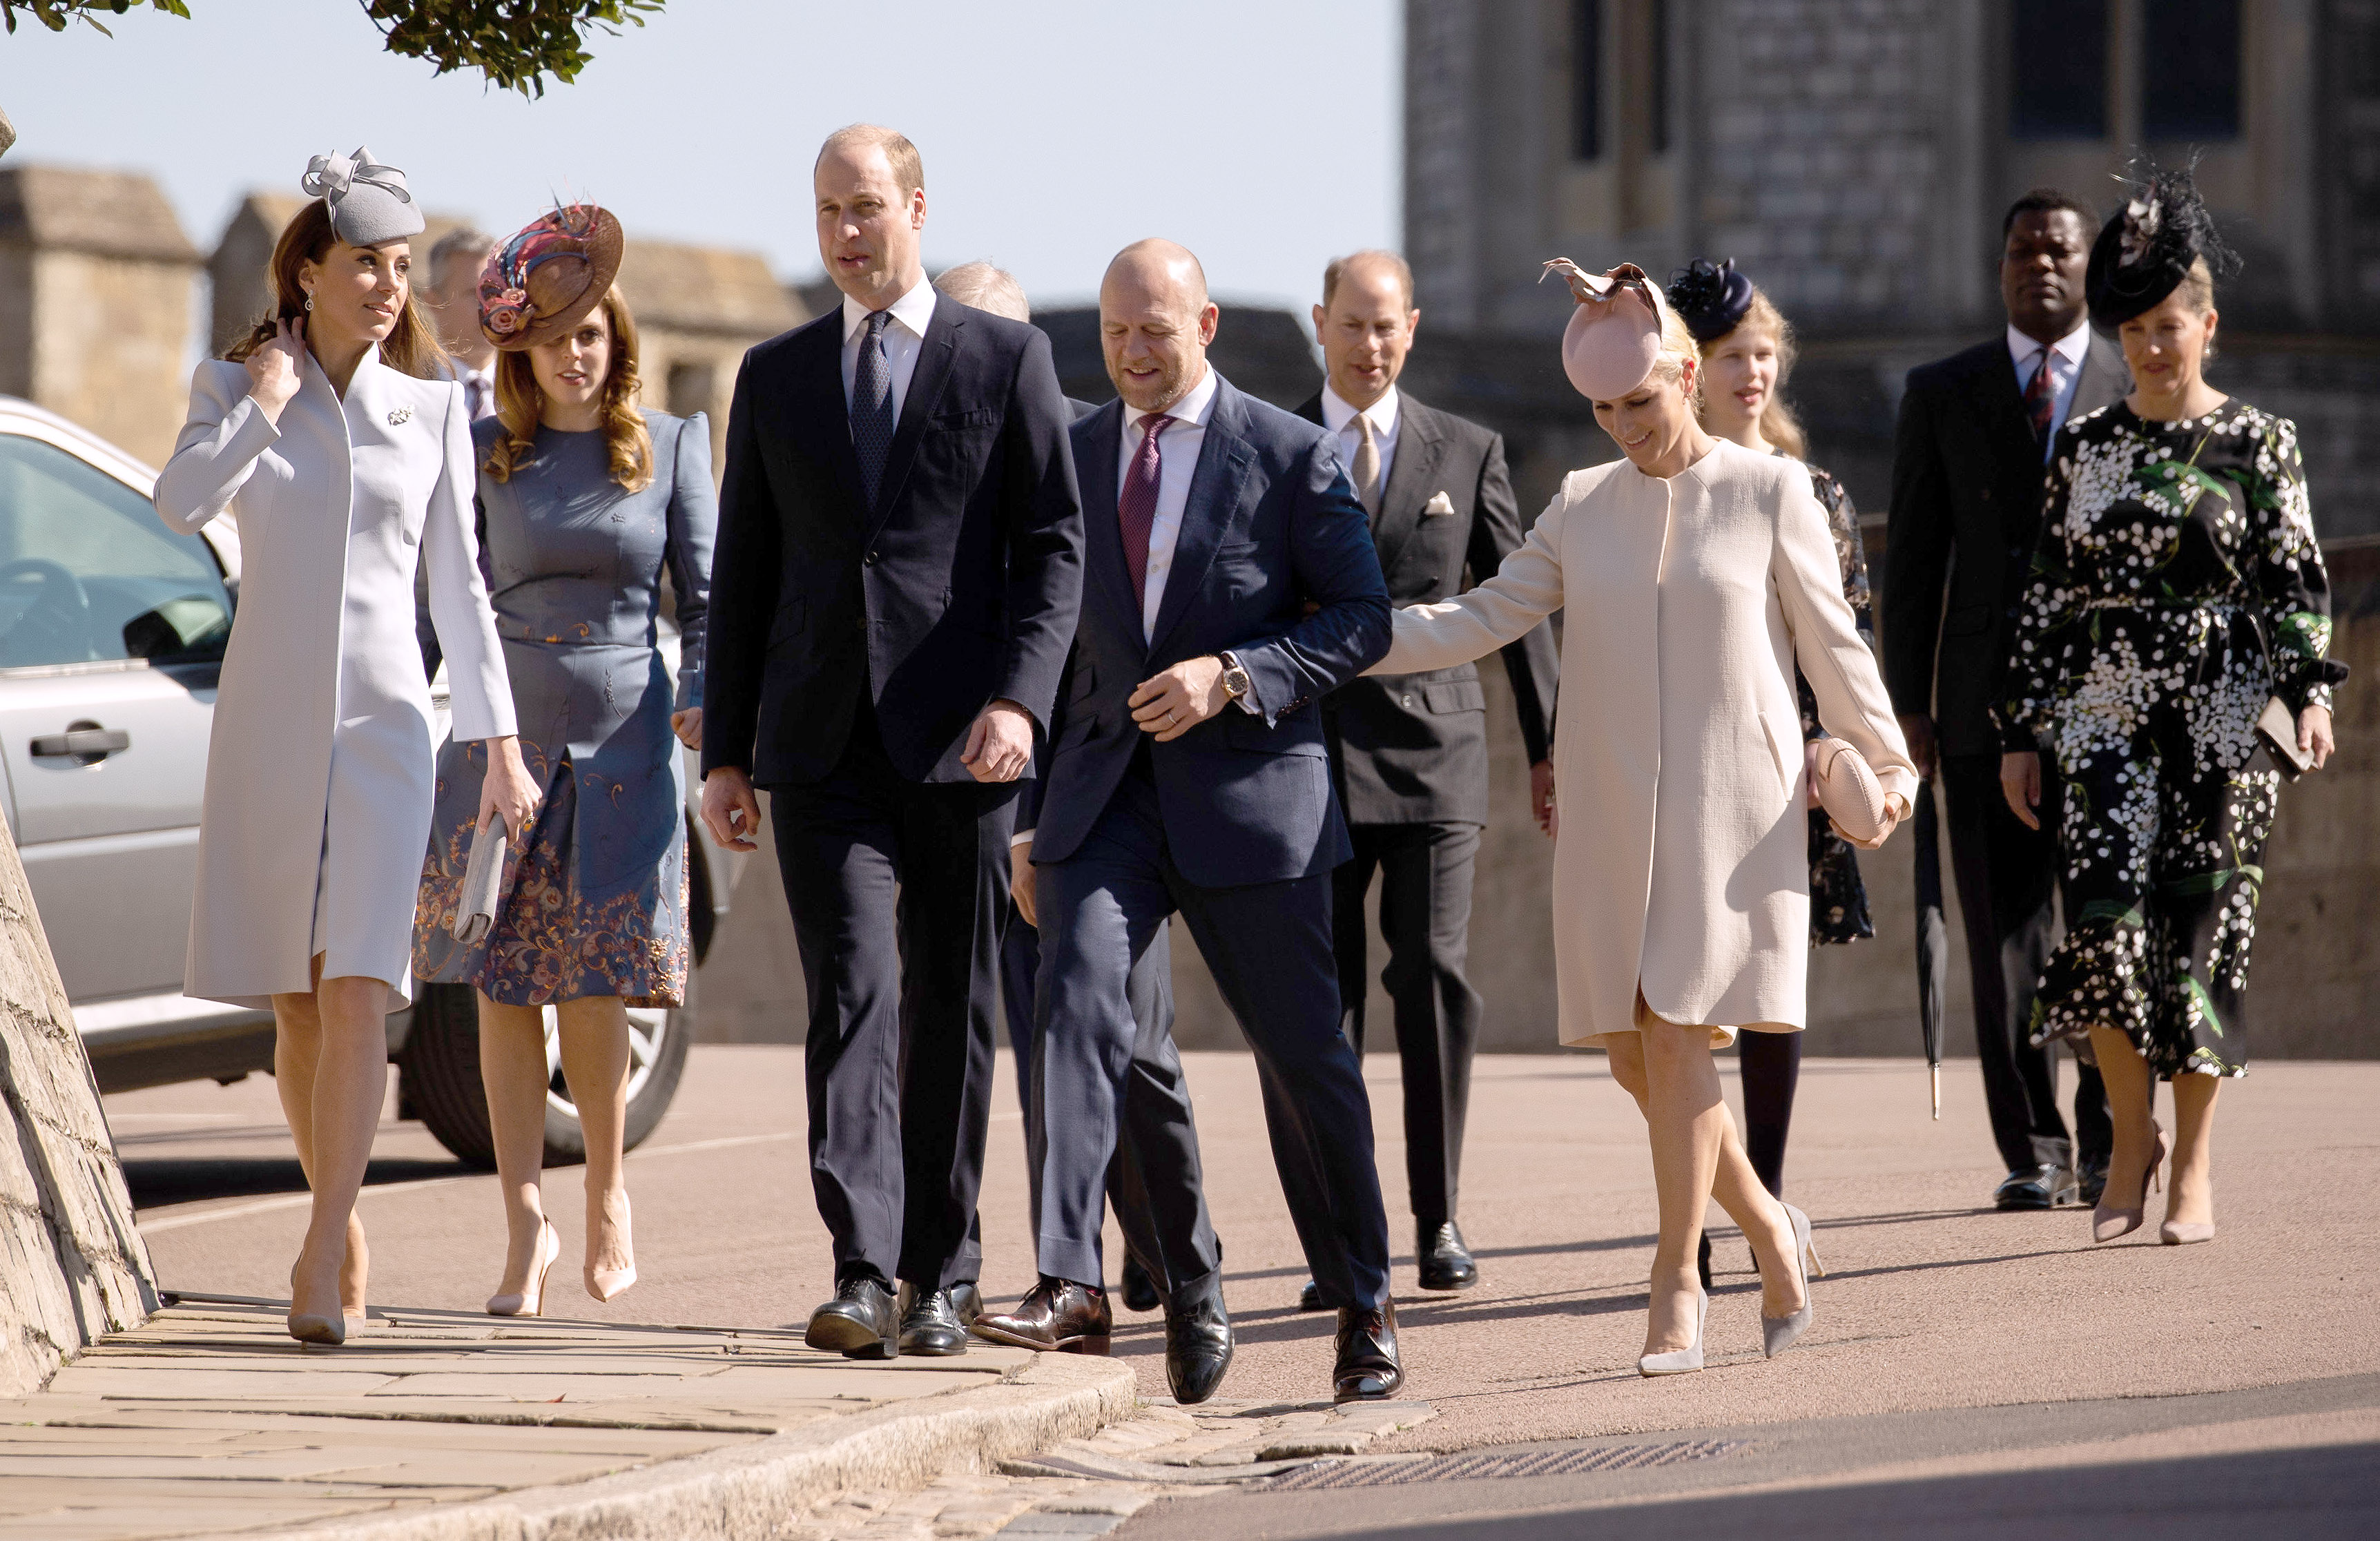 Familia Regală: Kate Middleton, Prințul William, Zara Phillips Tindall, Prințesa Beatrice, Prințul Eduard, Lady Louise Windsor, Prințul Andrew